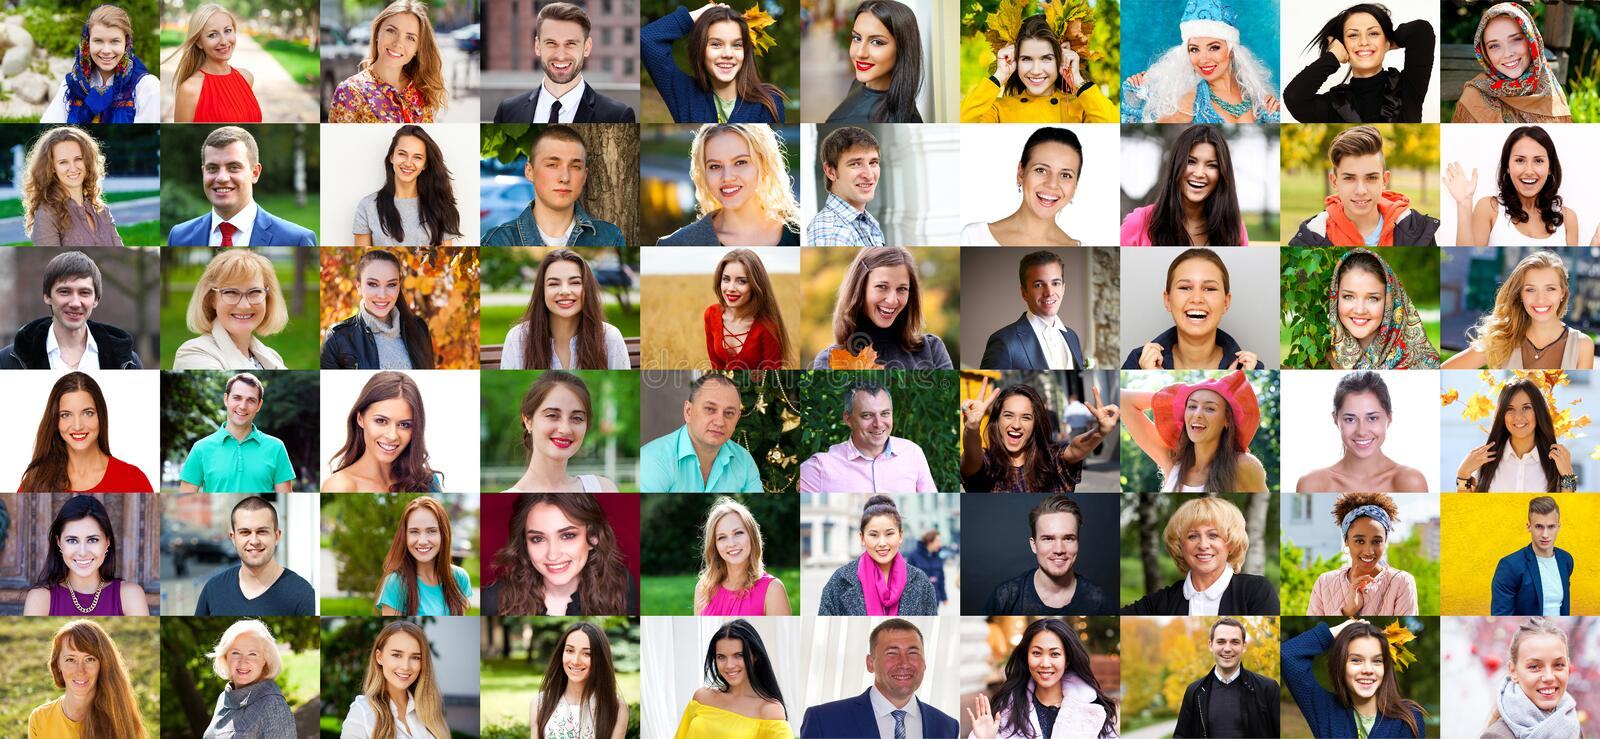 Collage photos of young and real happy people over 16 years old stock images